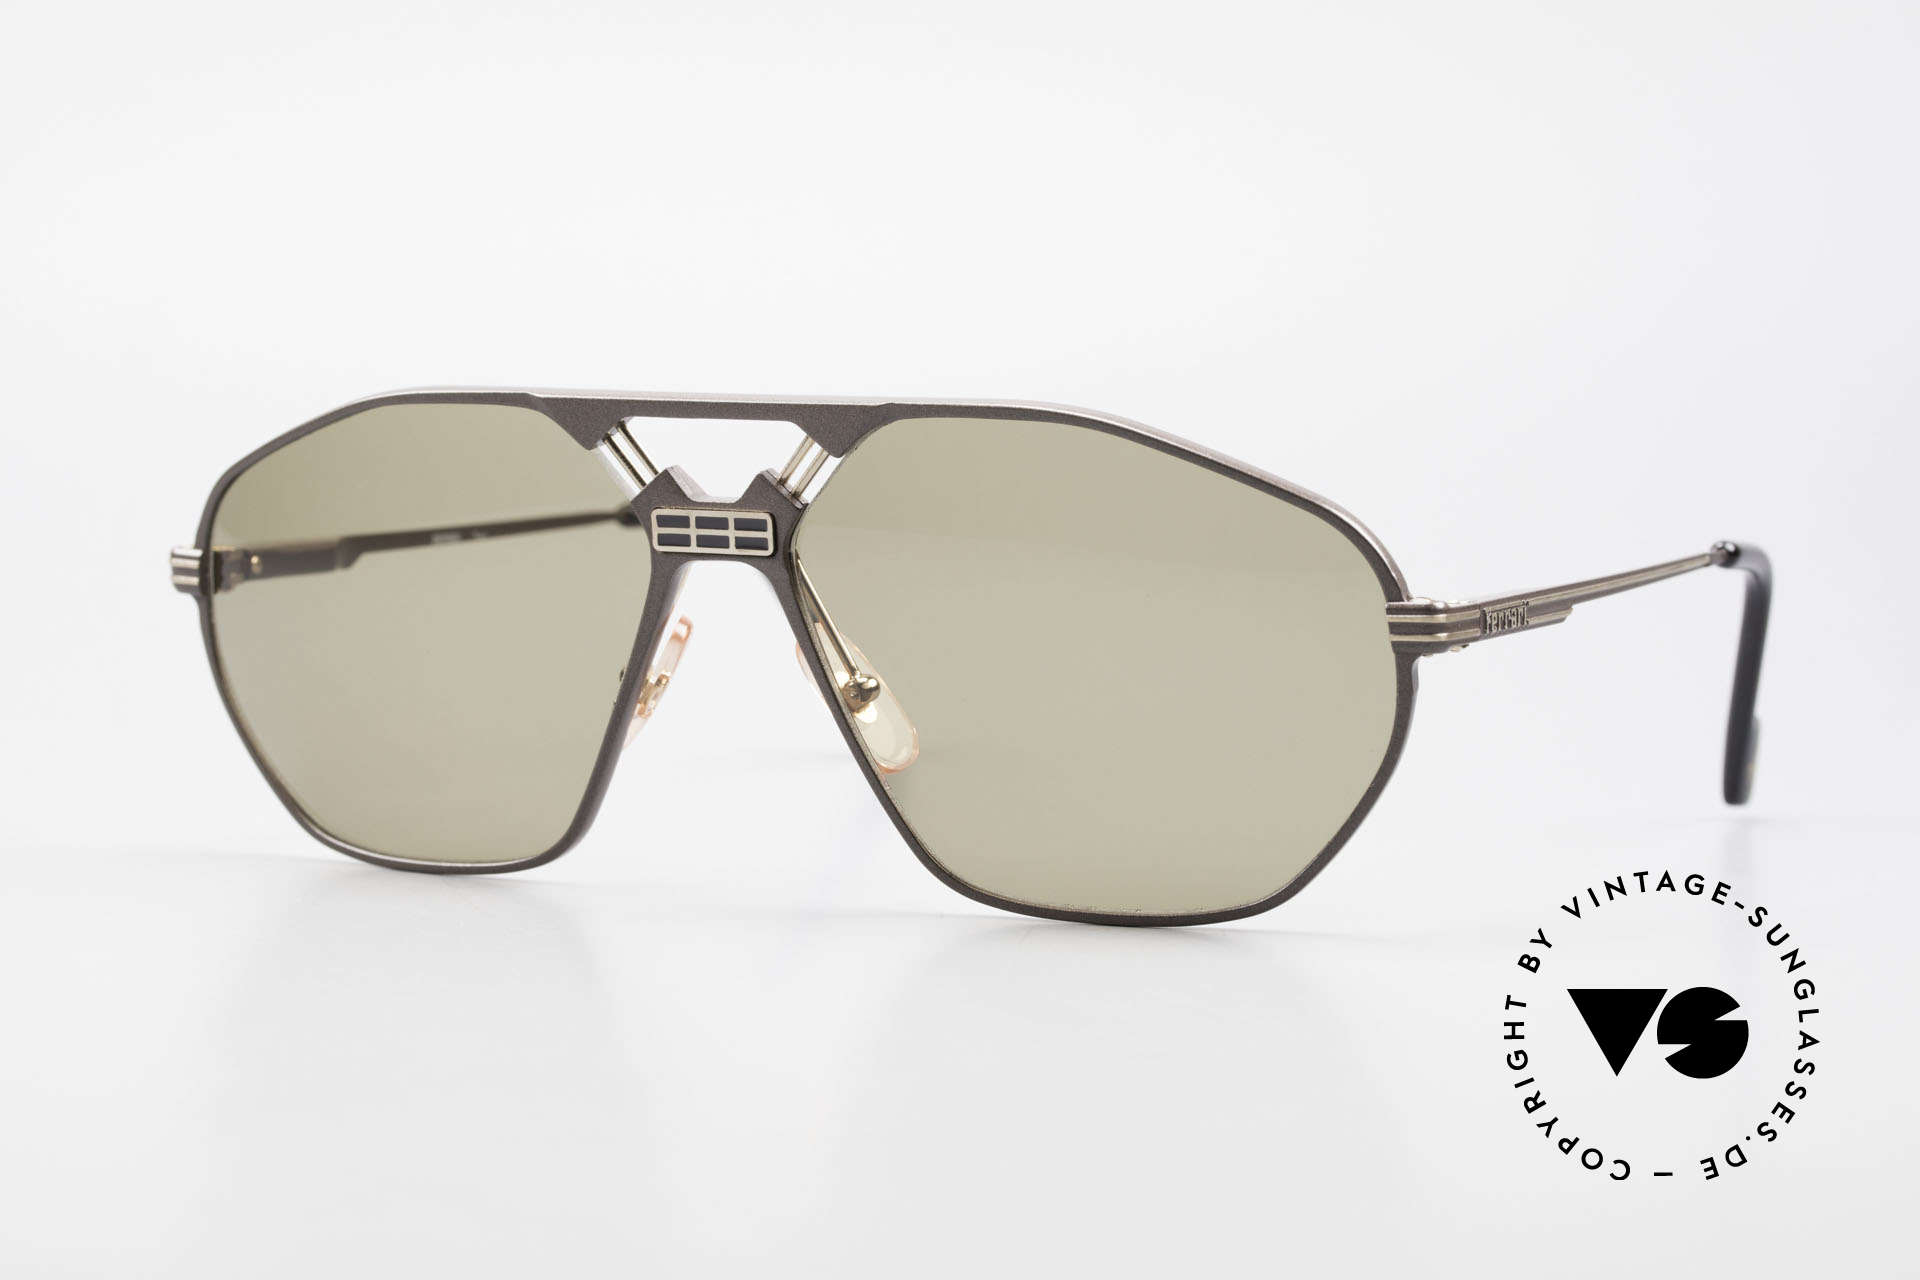 Ferrari F22/S Men's Rare Vintage XL Shades, luxury designer sunglasses by Ferrari from 1992/93, Made for Men